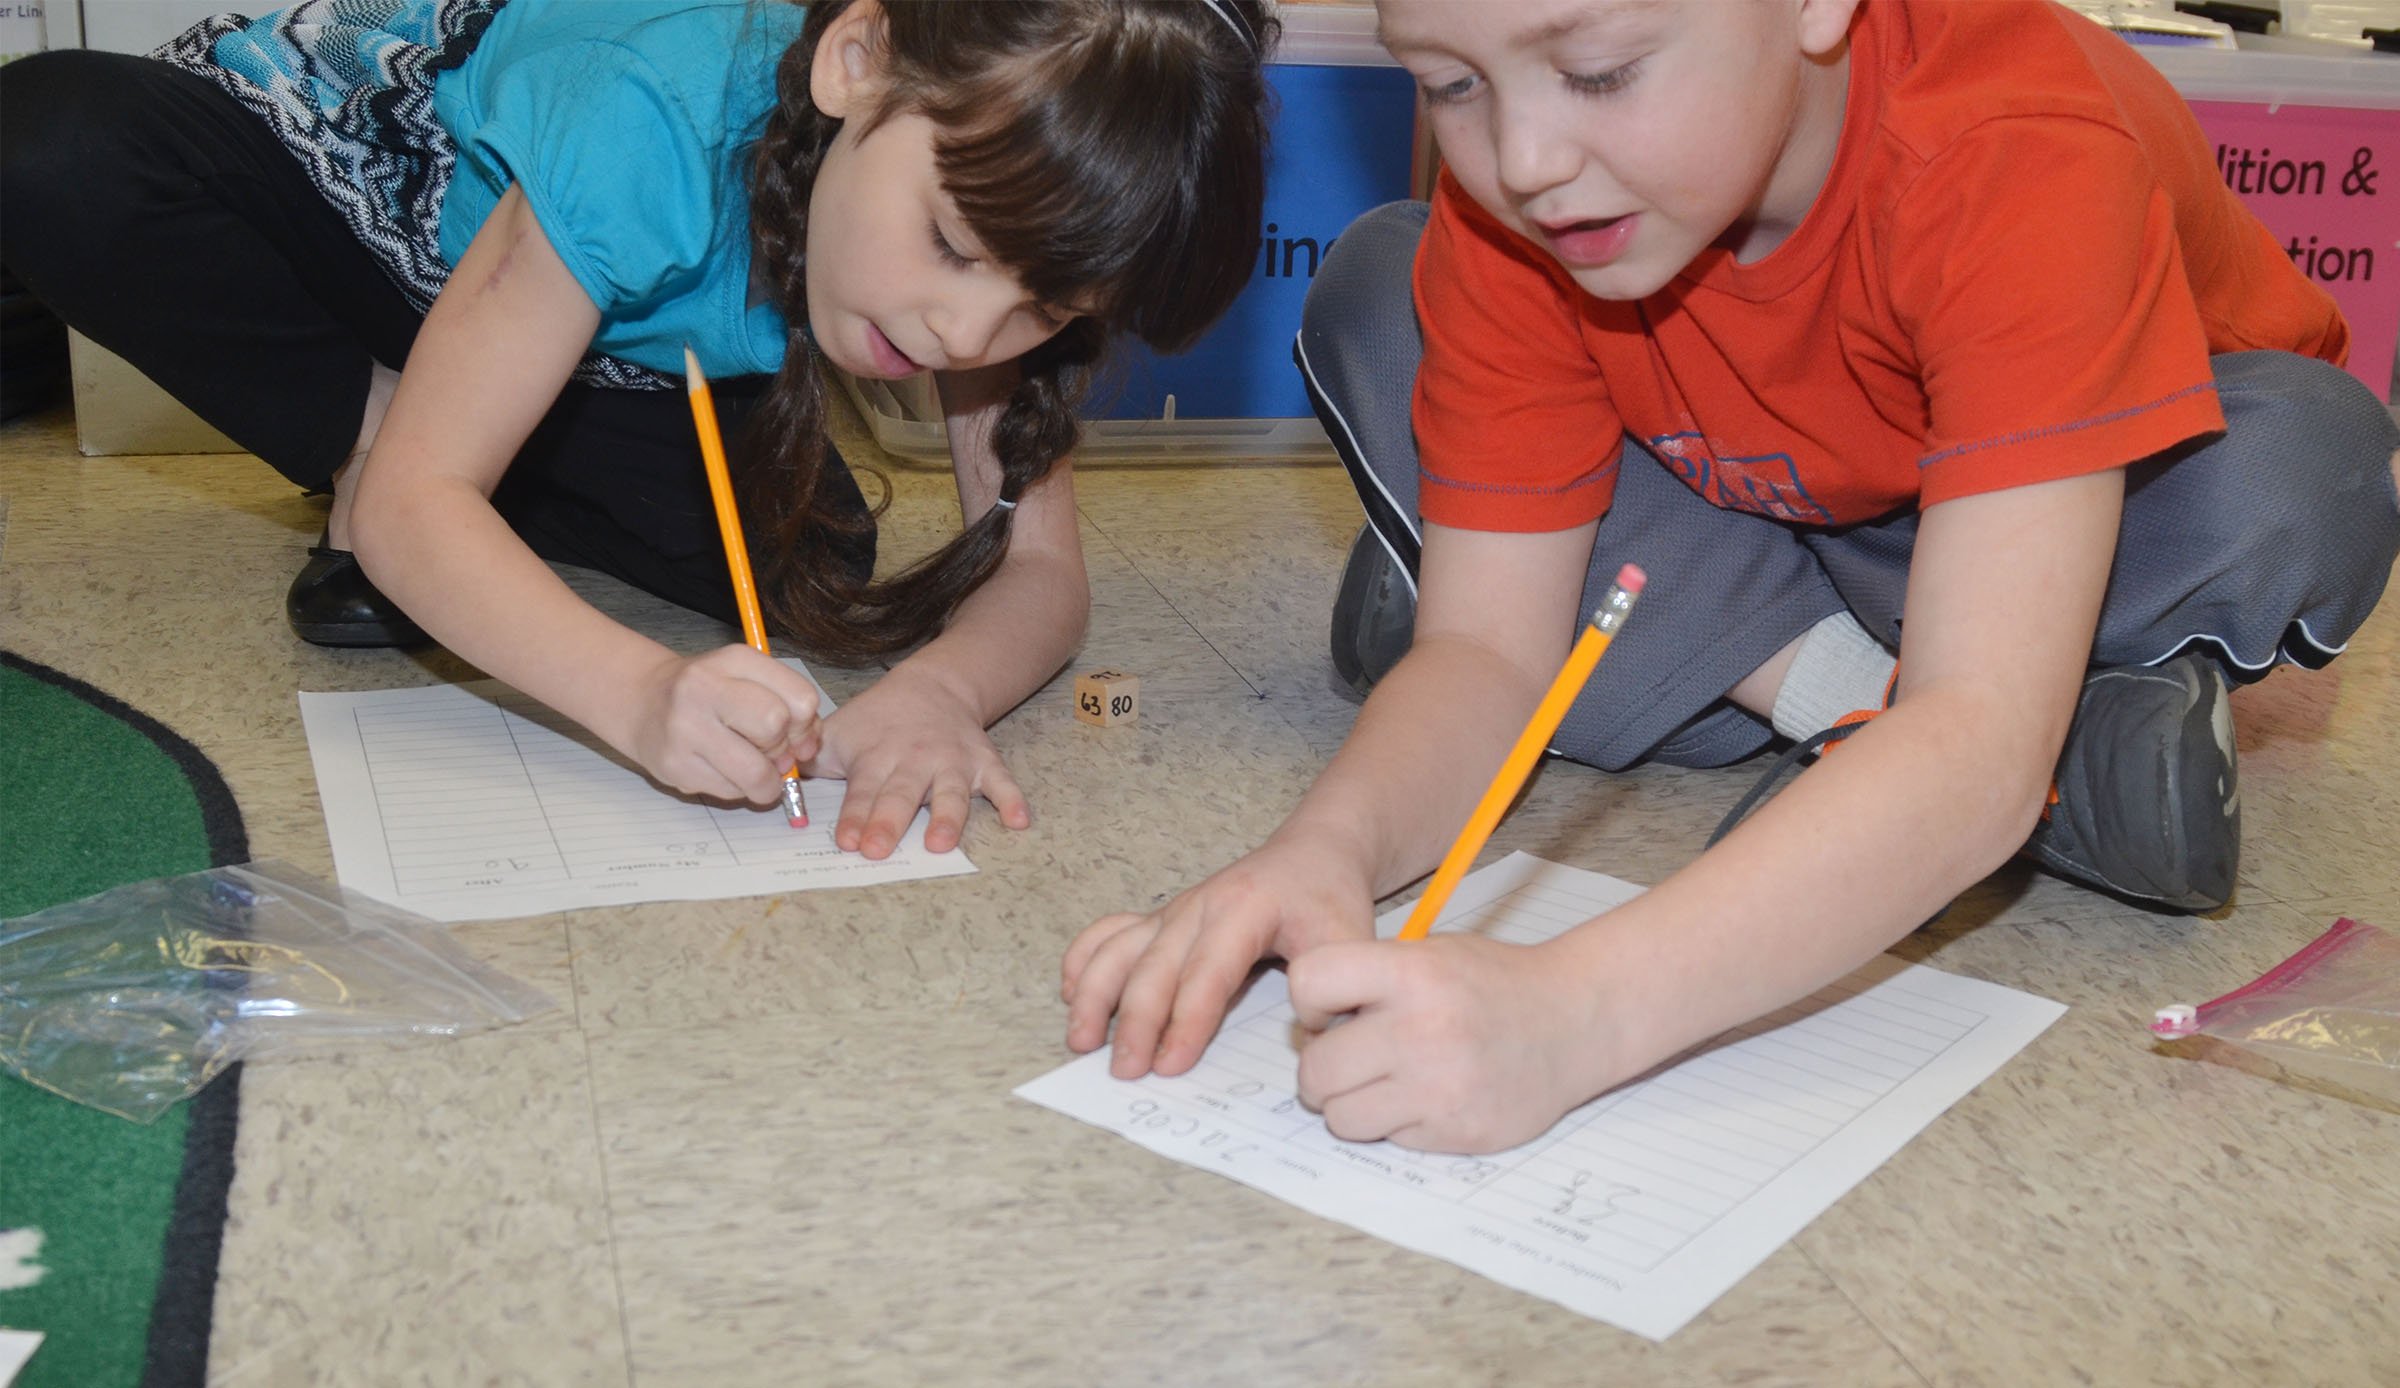 CES first-graders Phoebe Ritchie, at left, and Jacob Golden play a math game together.